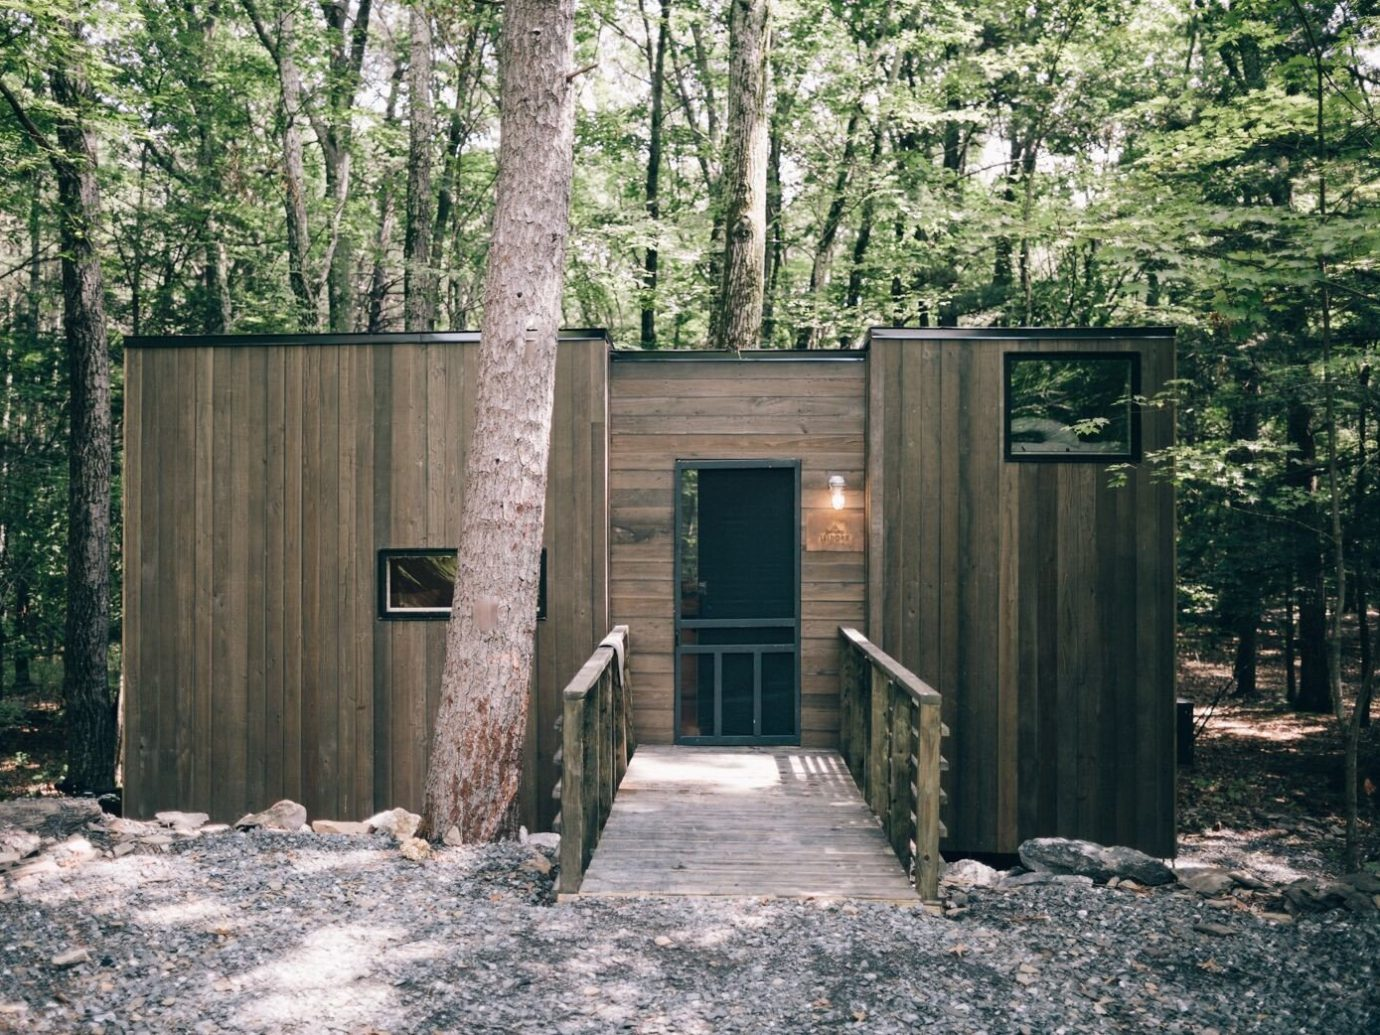 Boutique Hotels Fall Travel Hotels Outdoors + Adventure tree outdoor ground house shed Architecture cottage home outhouse shack siding wood real estate outdoor structure log cabin facade garden buildings state park hut Forest